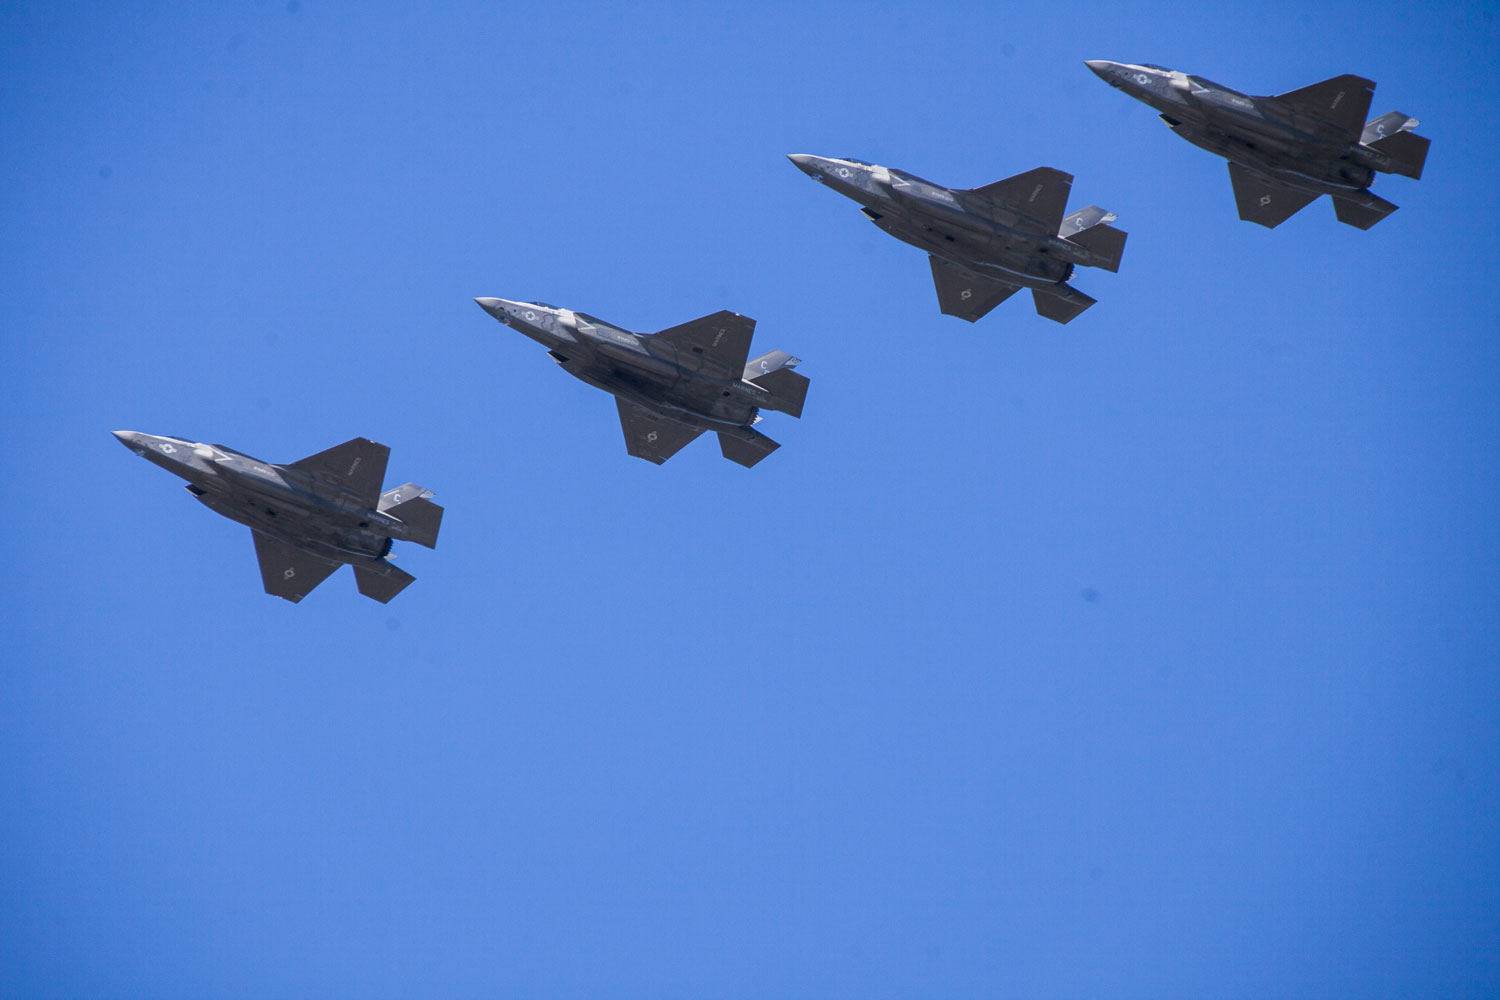 F-35 Stealth Fighters Coming to Miramar Sooner than Expected